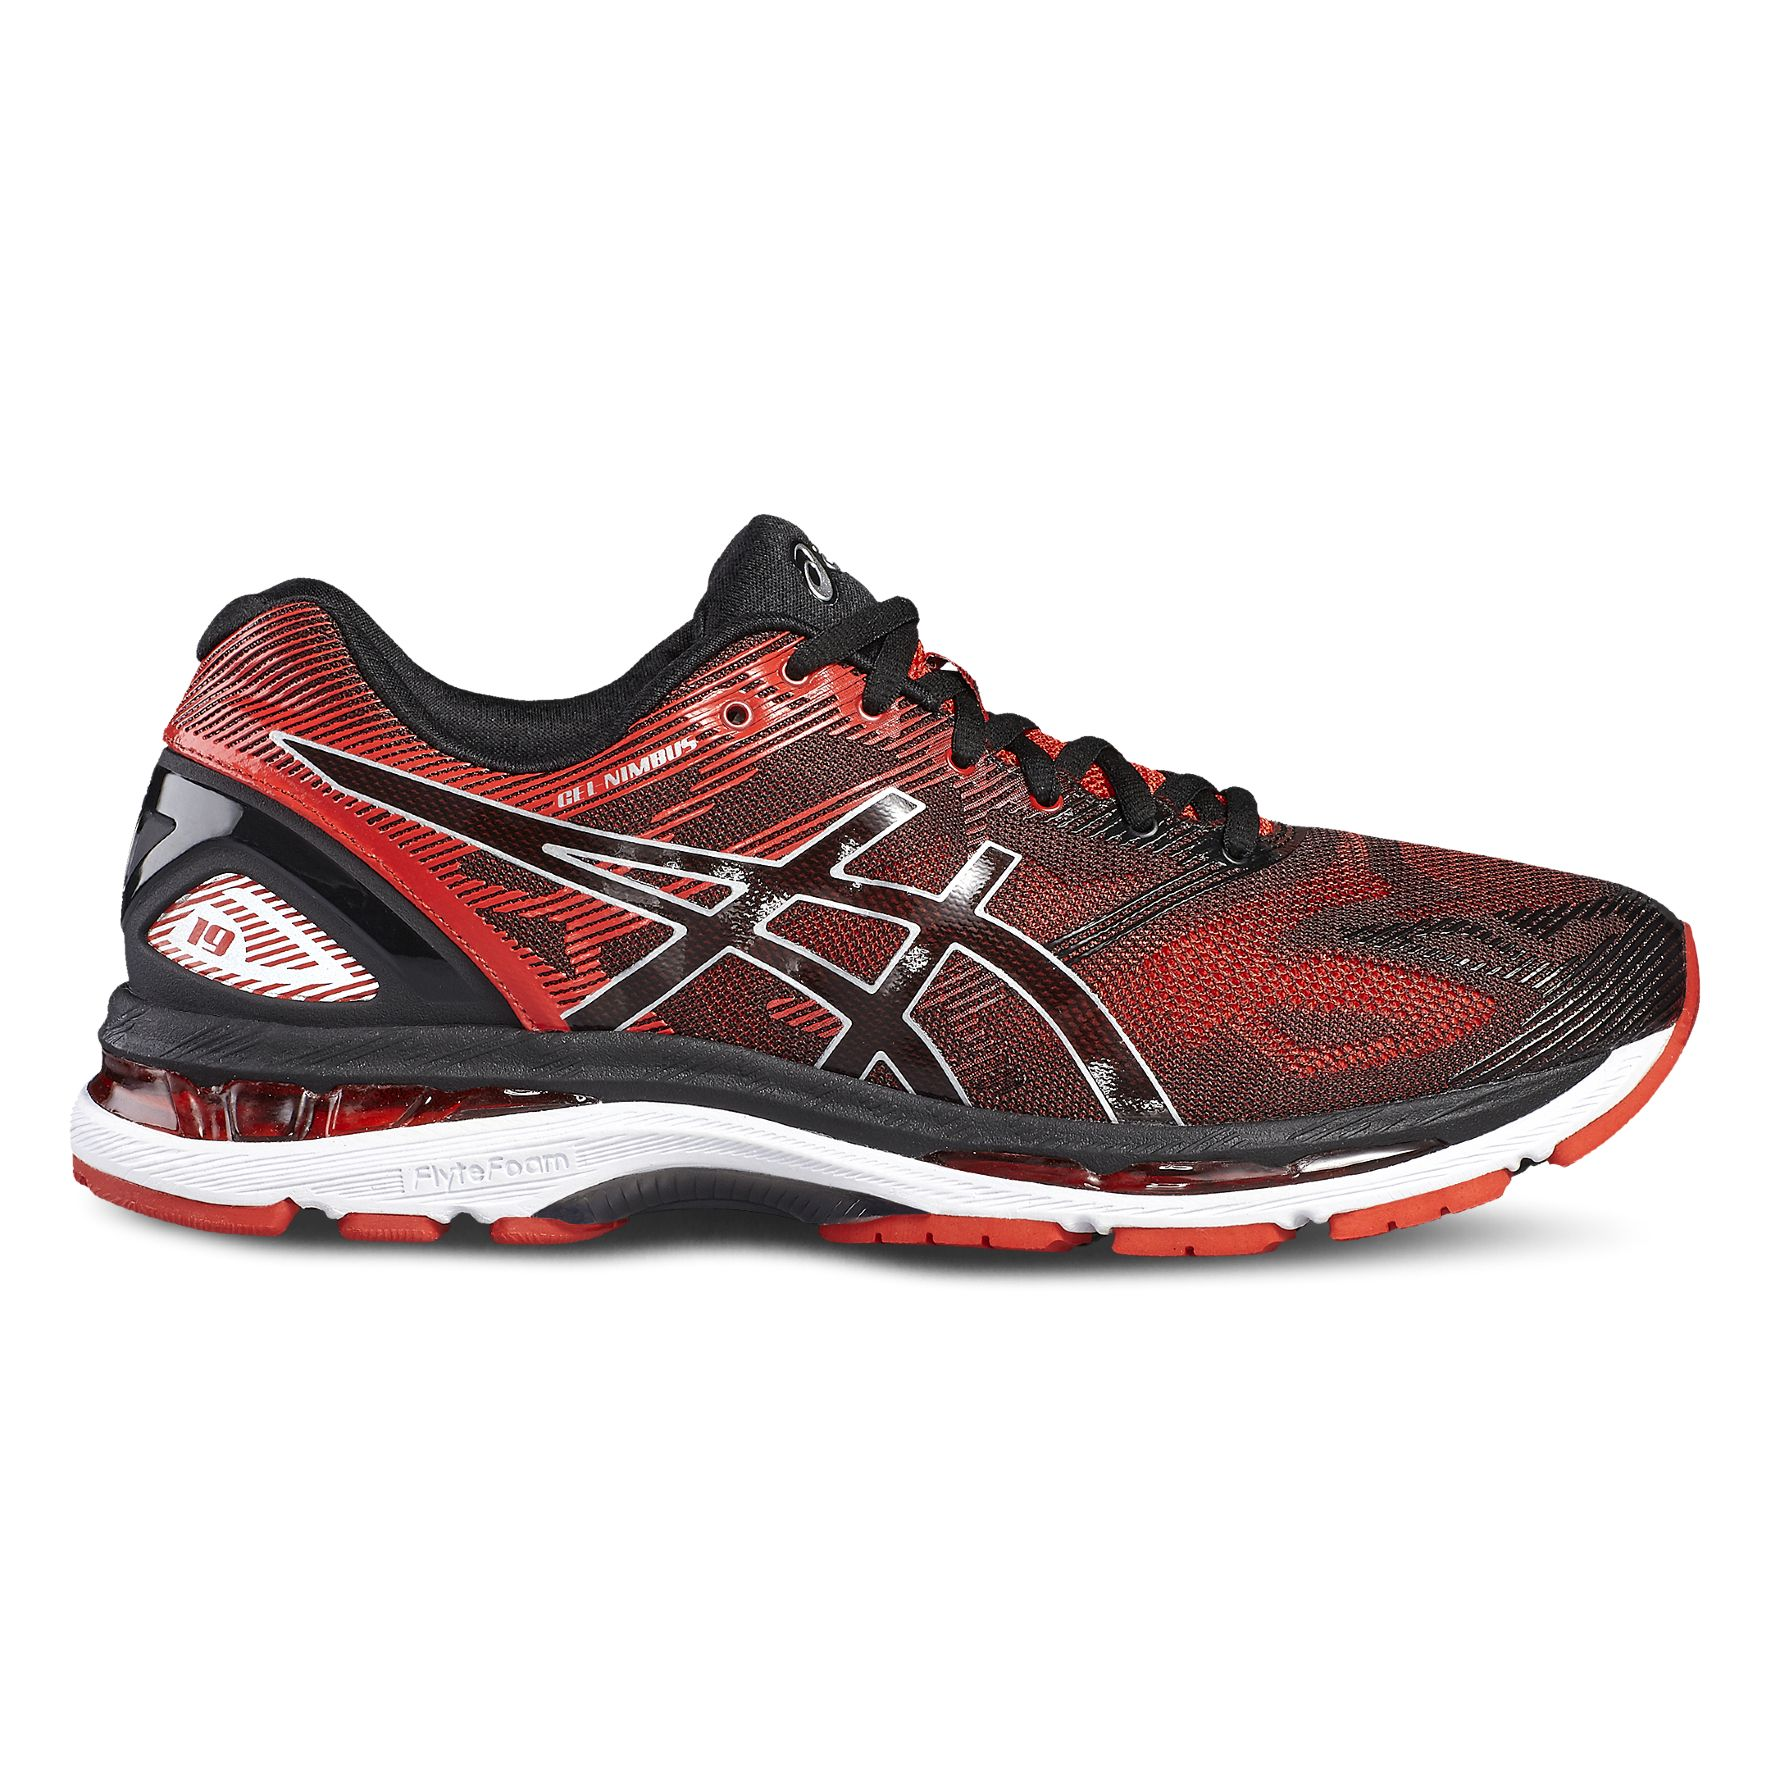 Best Shoes For Gym And Running